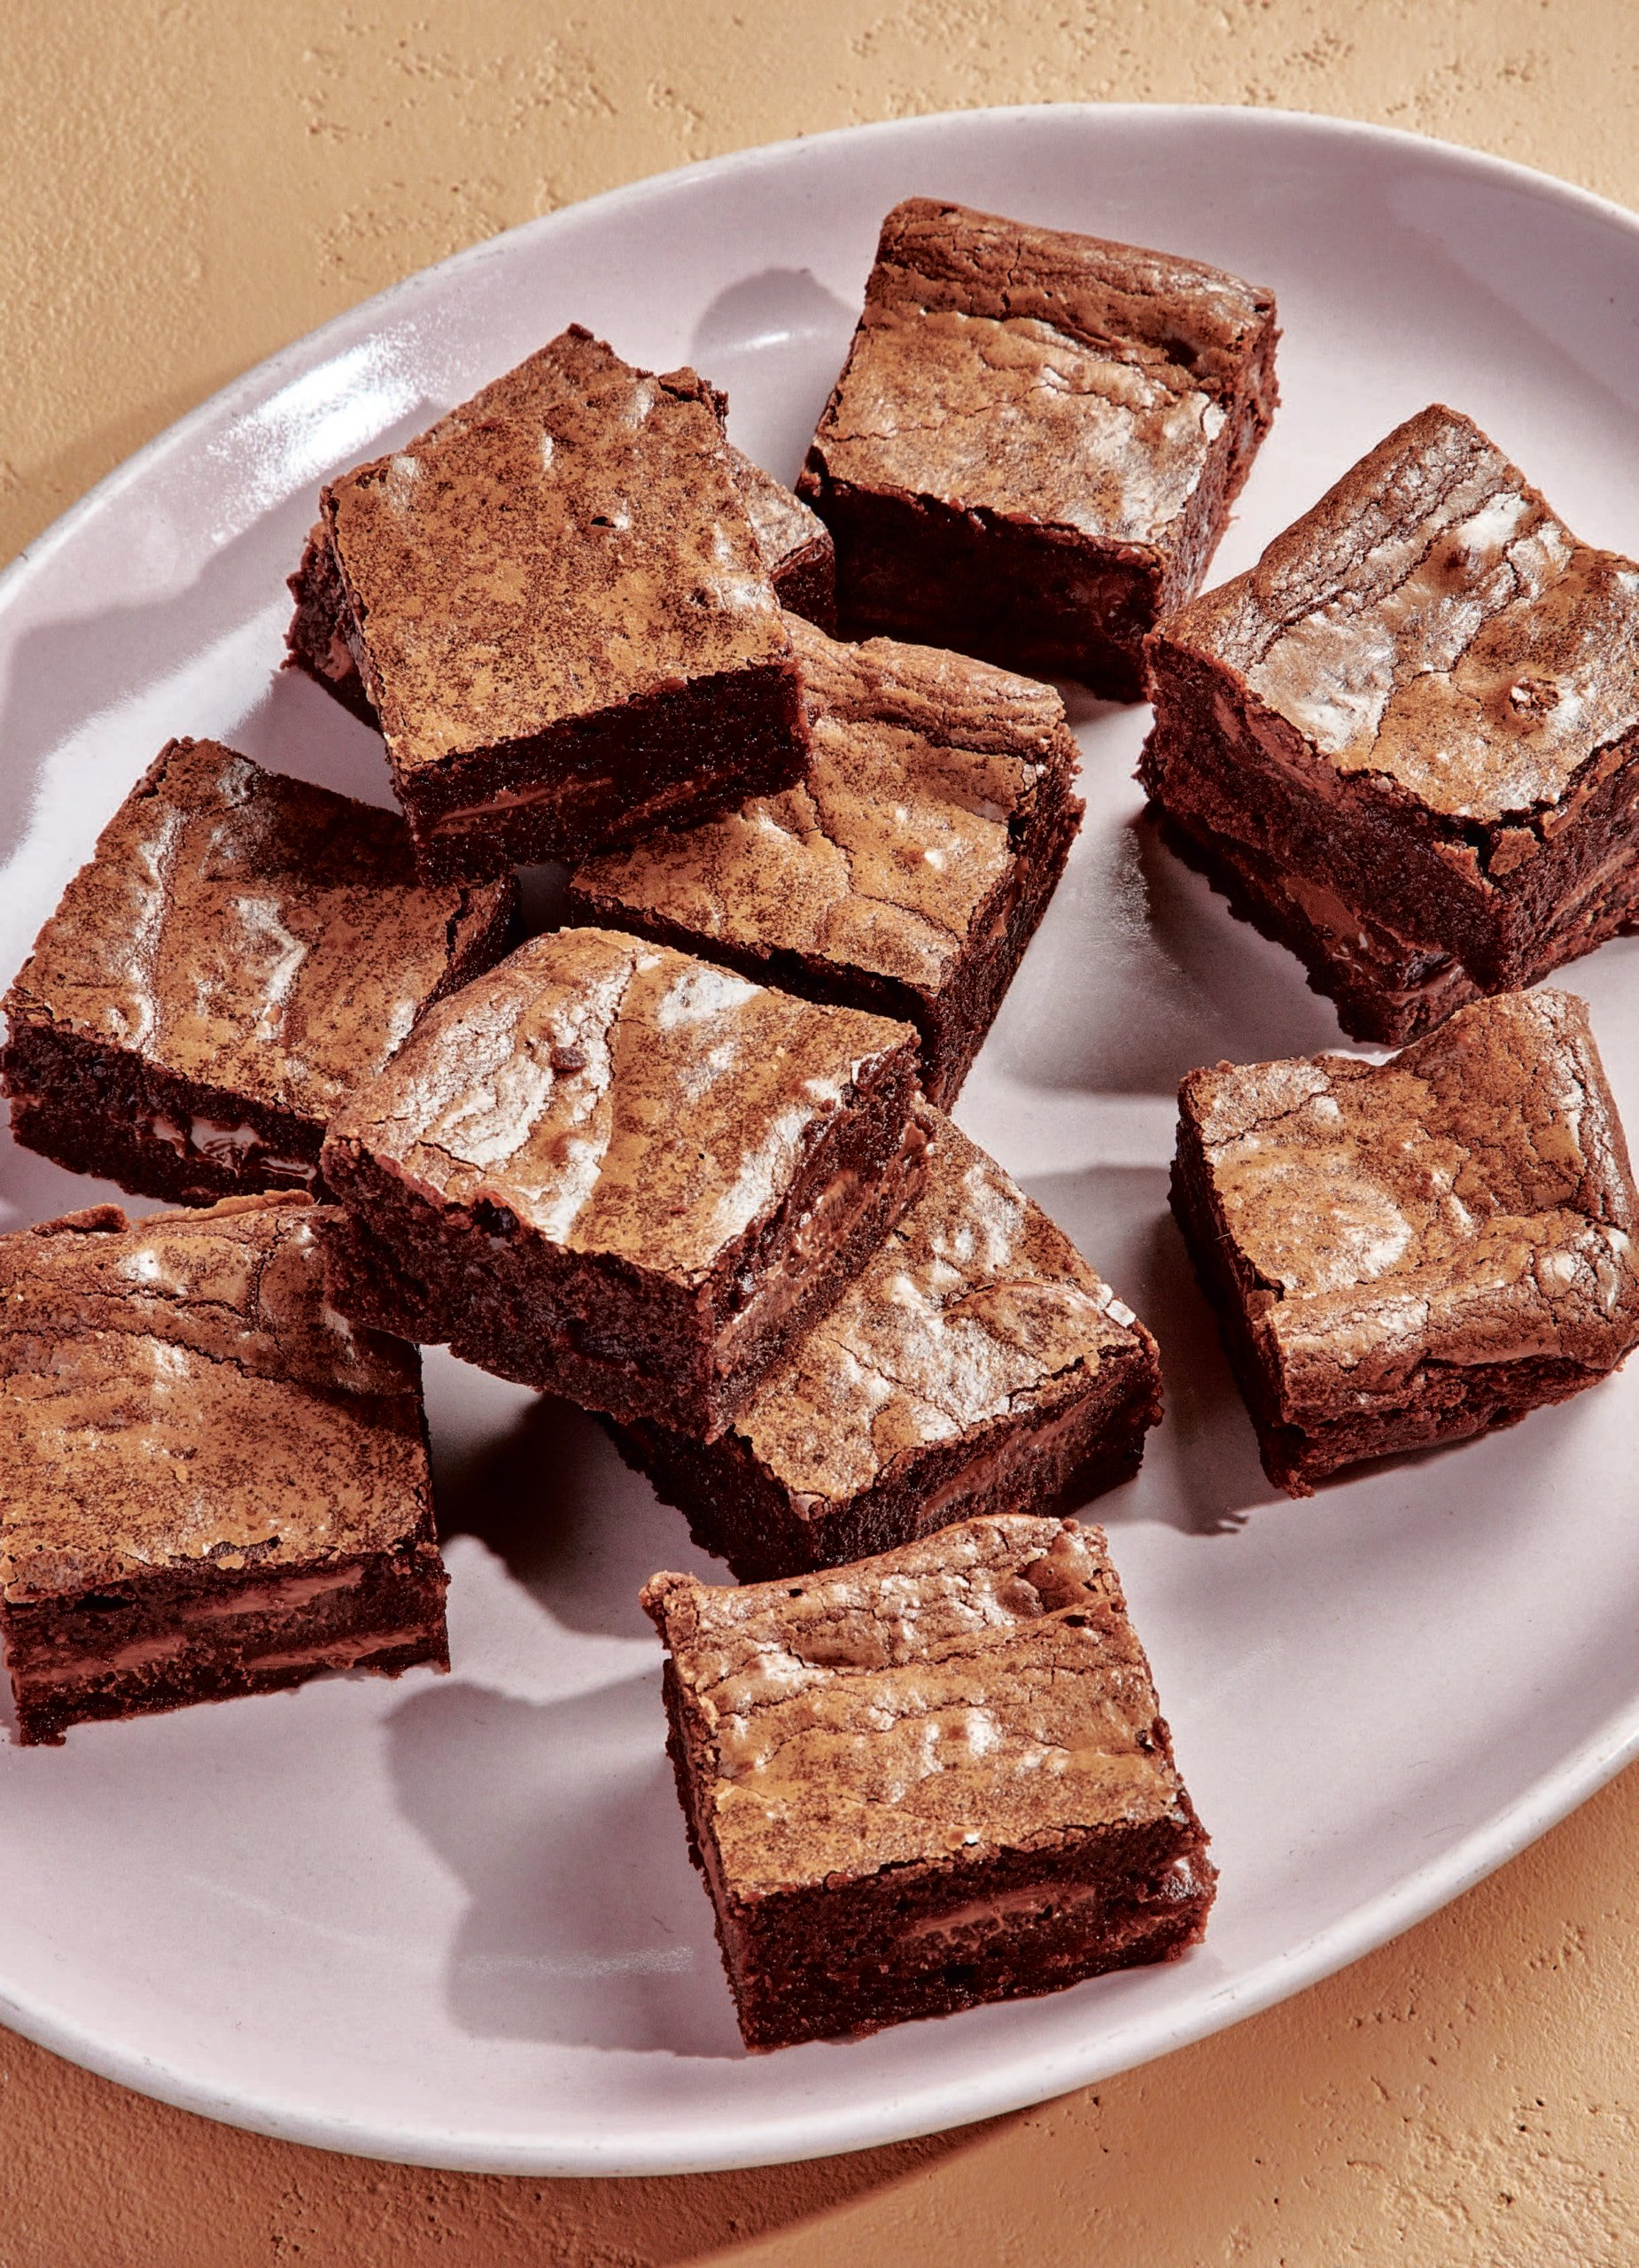 Claire Saffitz malted forever brownies